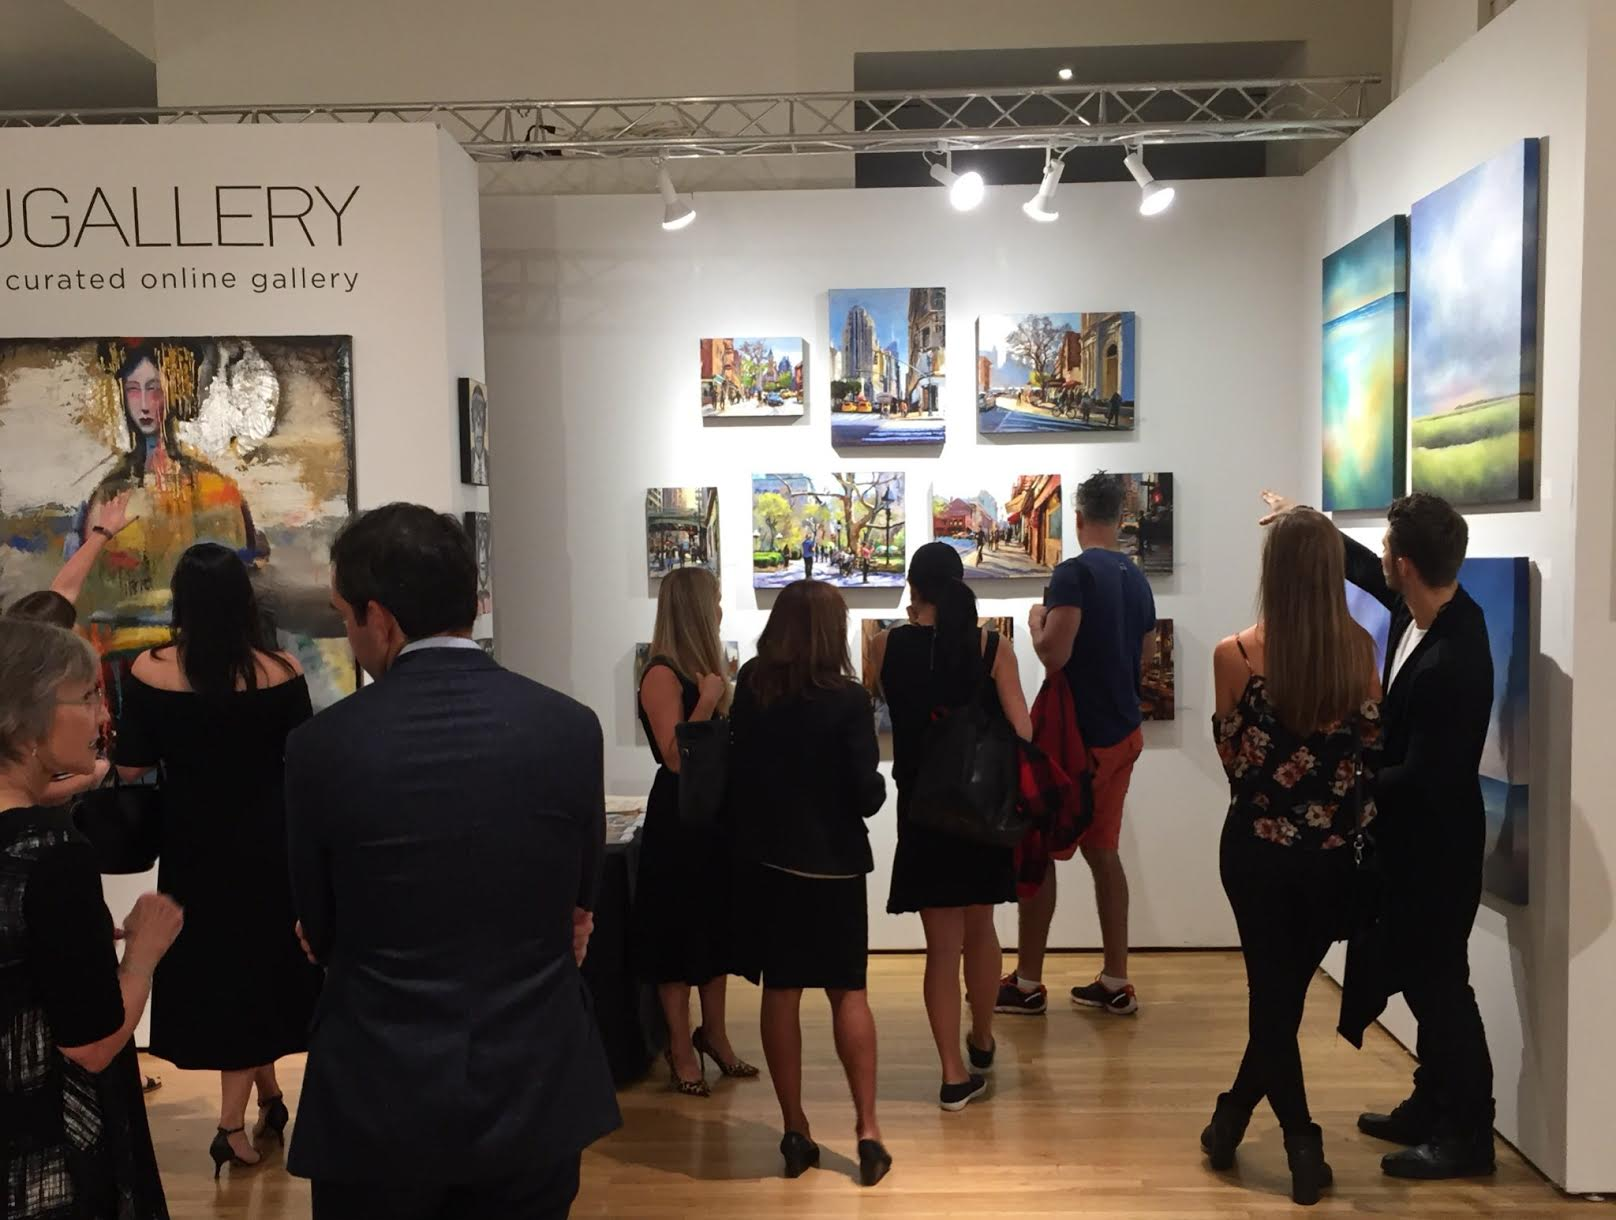 UGallery's featured booth at the entrance of the fair on opening night.